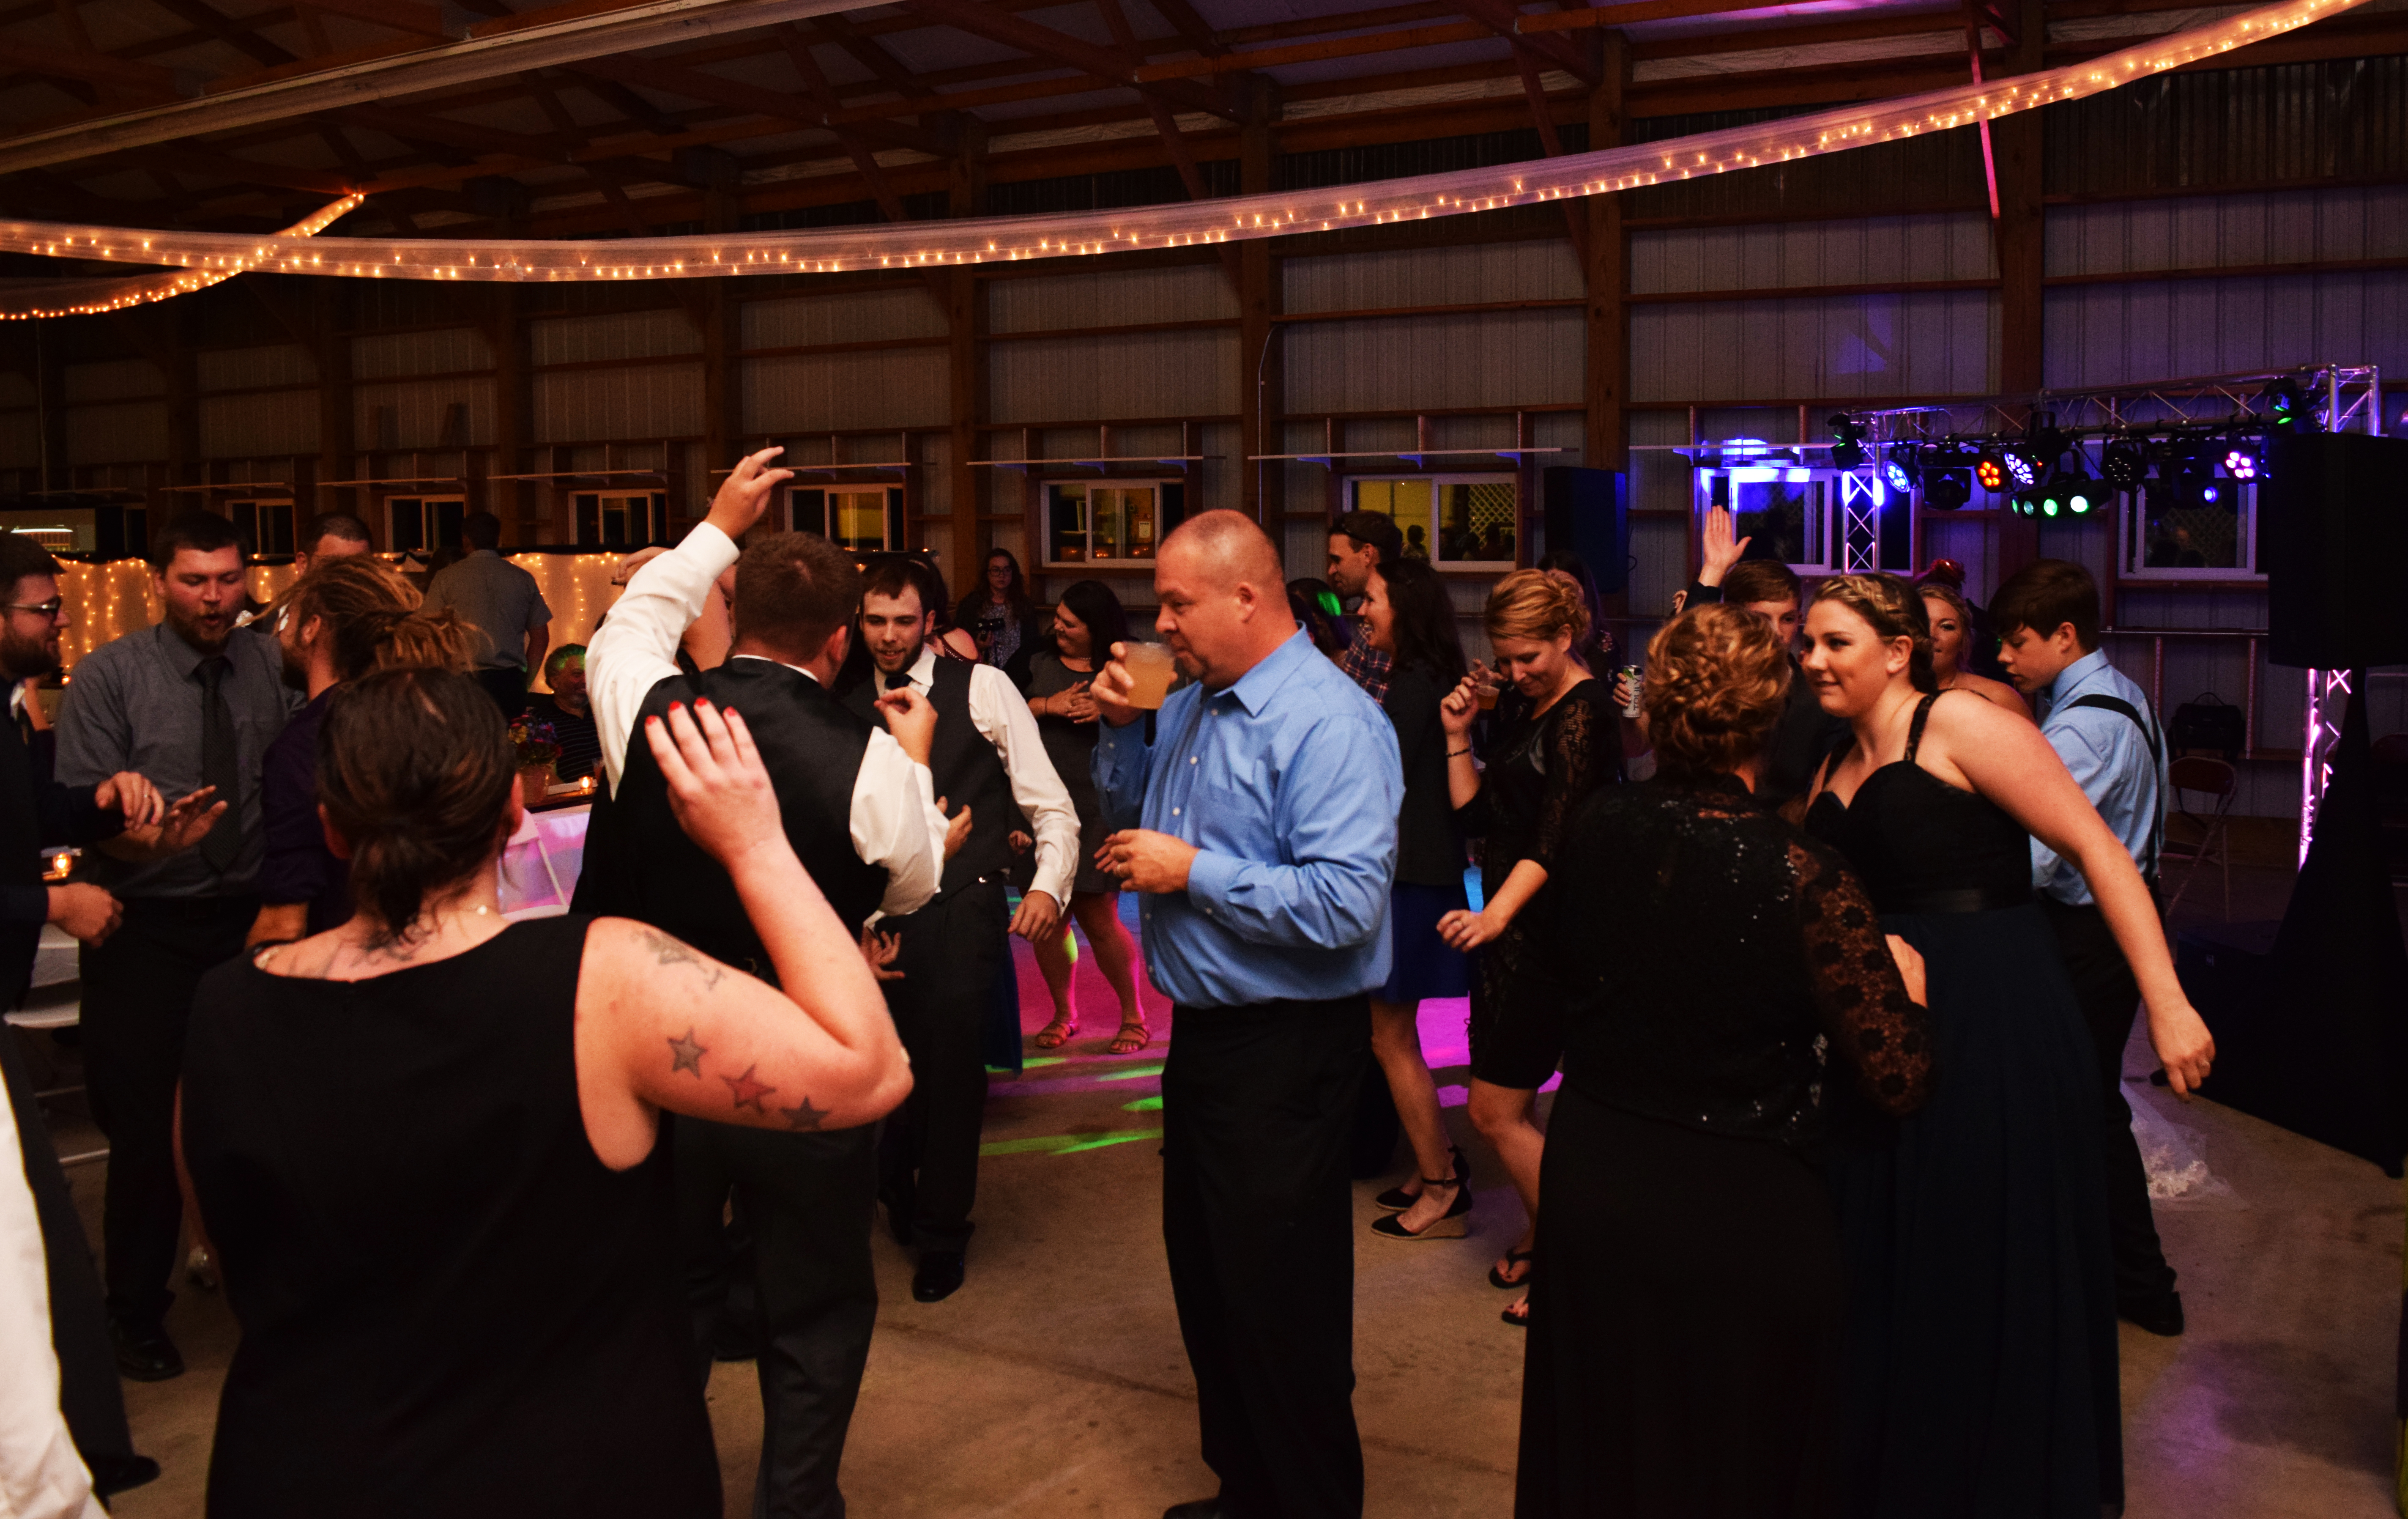 Karl Wedding 2016 Dance